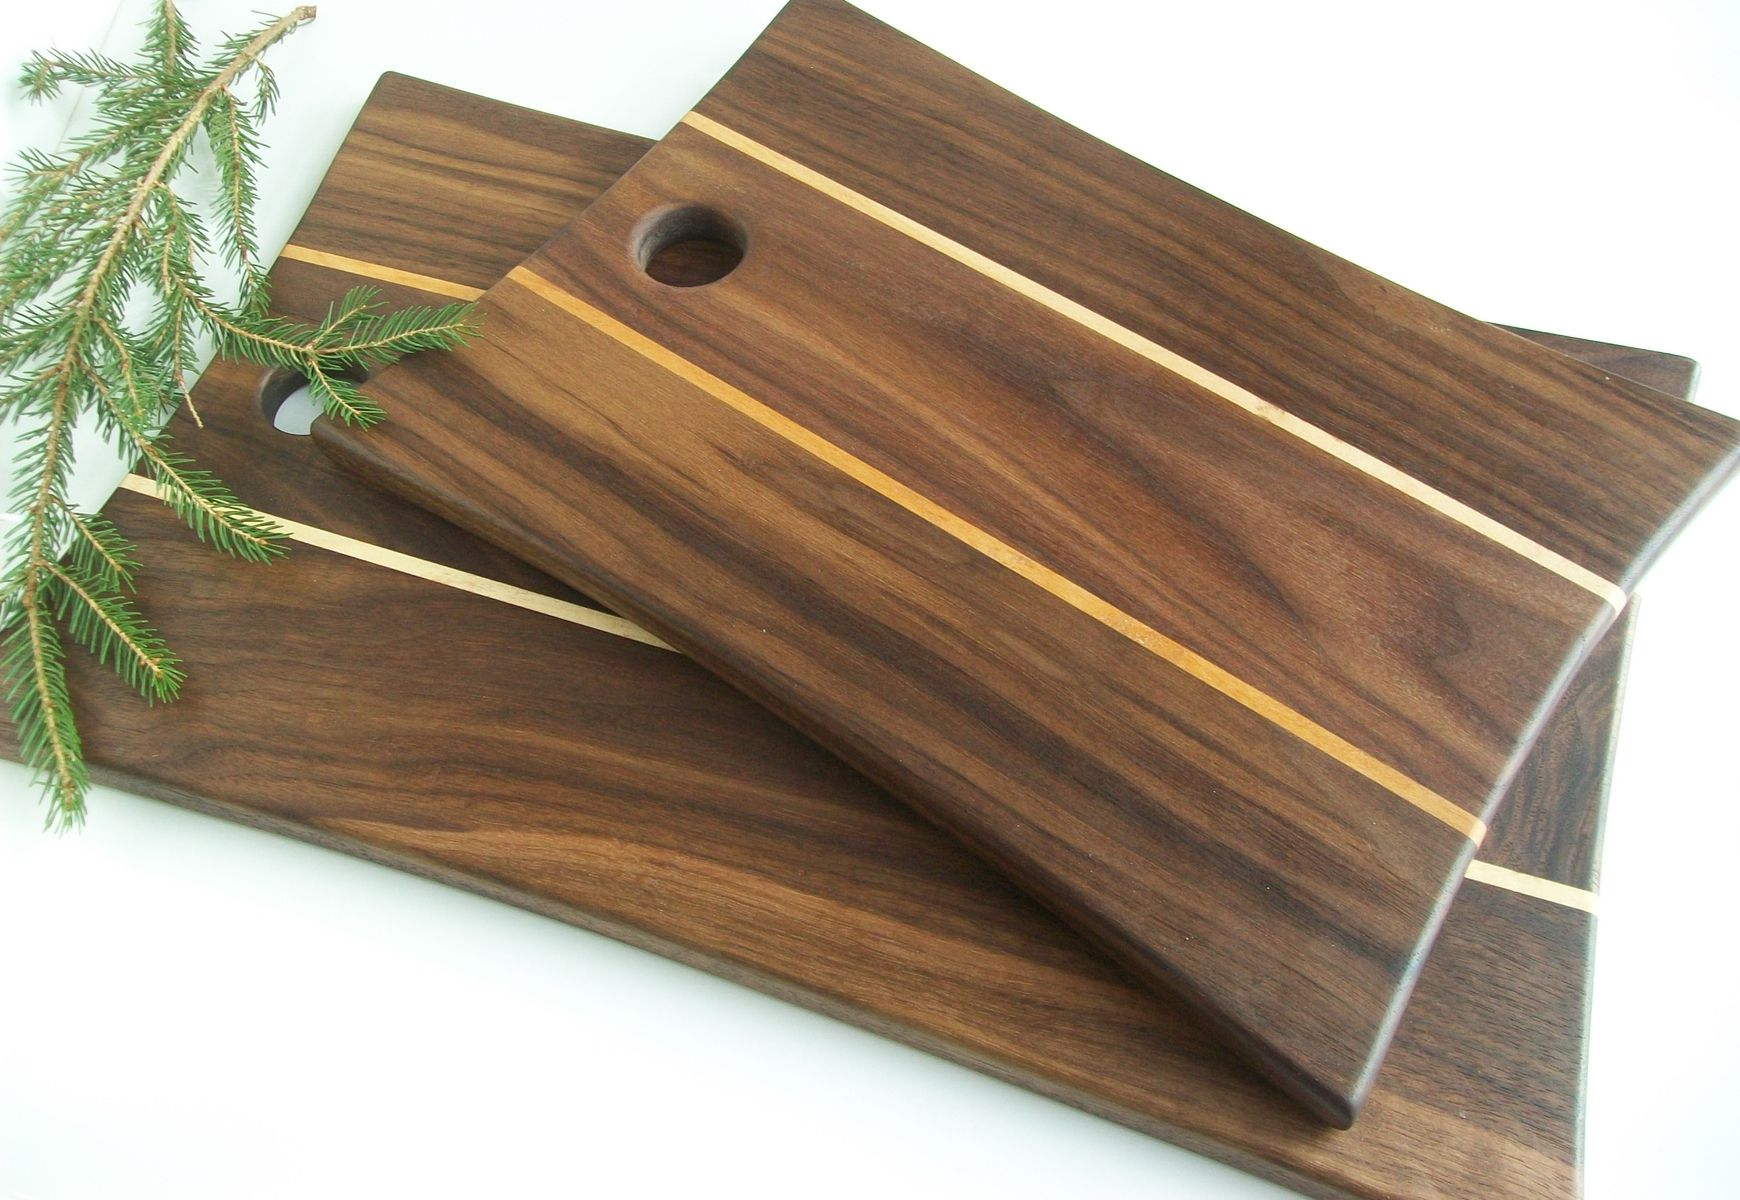 Hand Crafted Cutting Board Large By Douglas Martin Fine